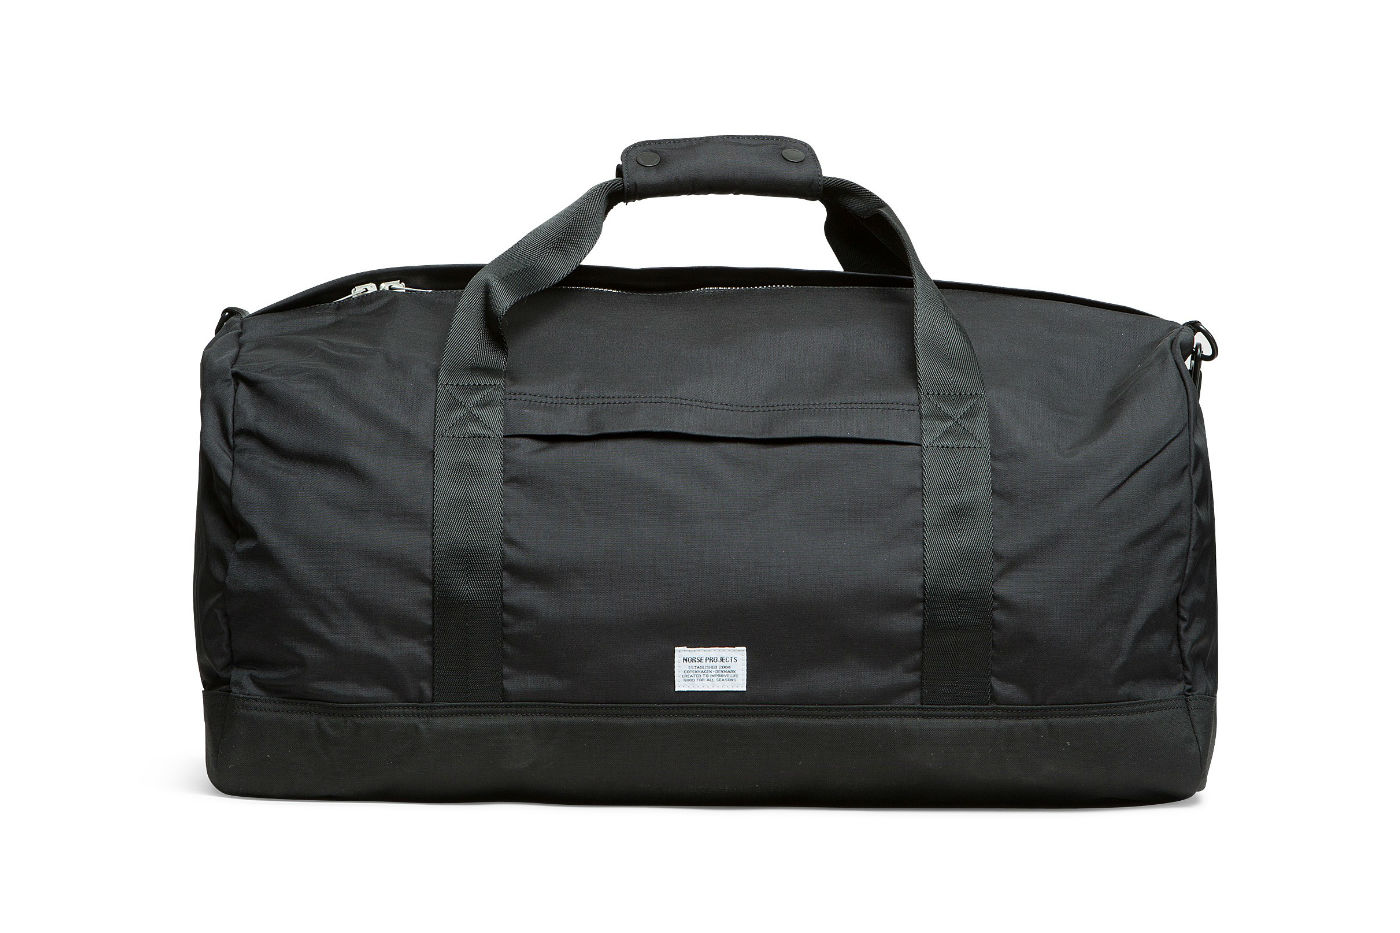 norse projects duffel bag